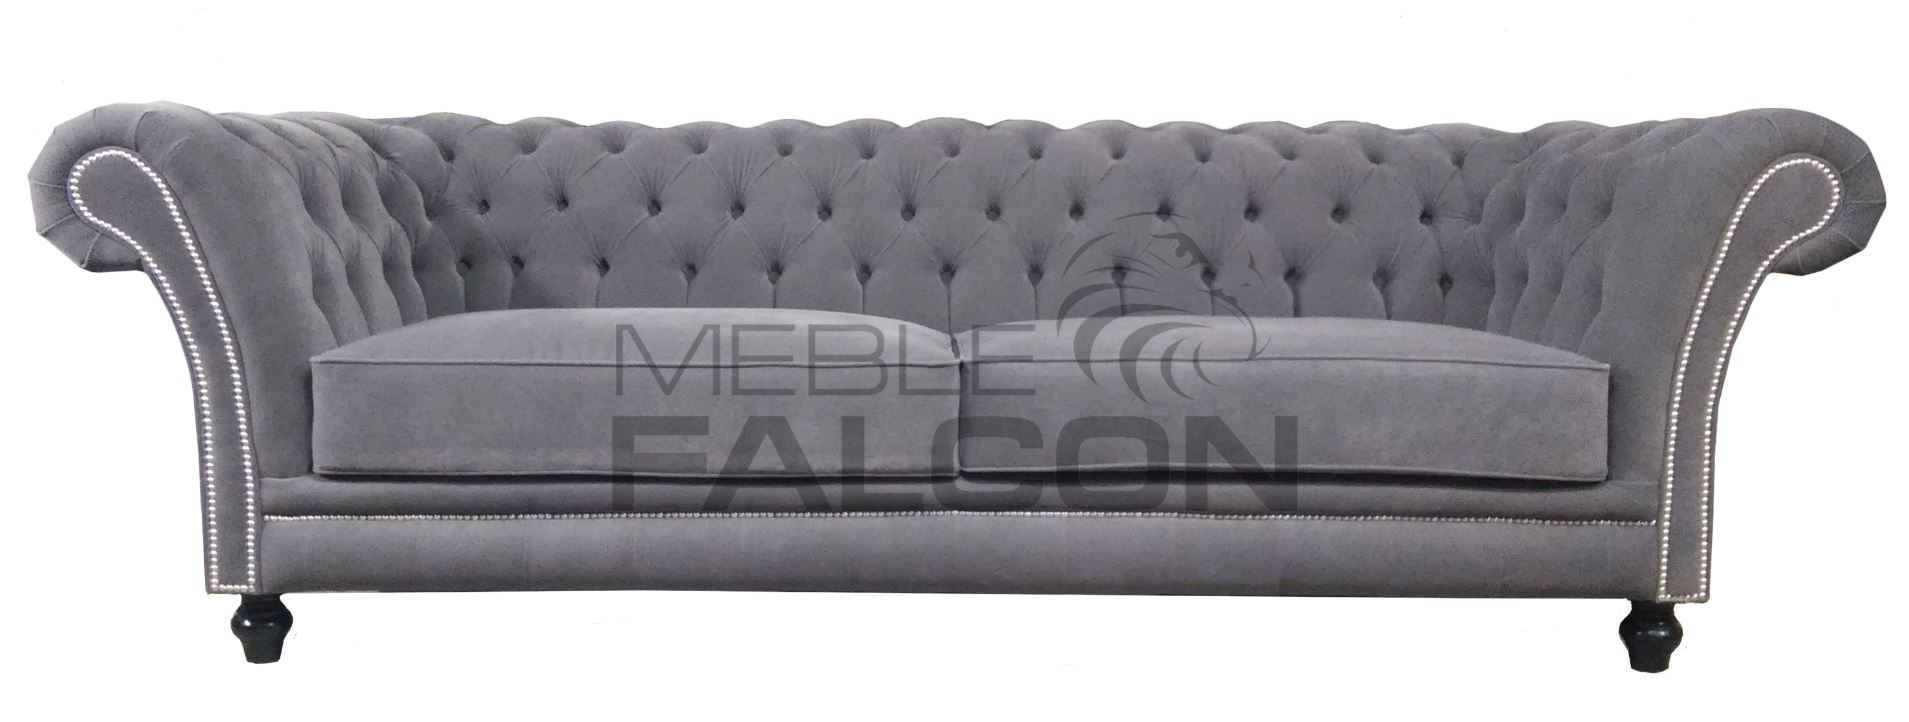 sofa chesterfield exeter soft pikowana producent